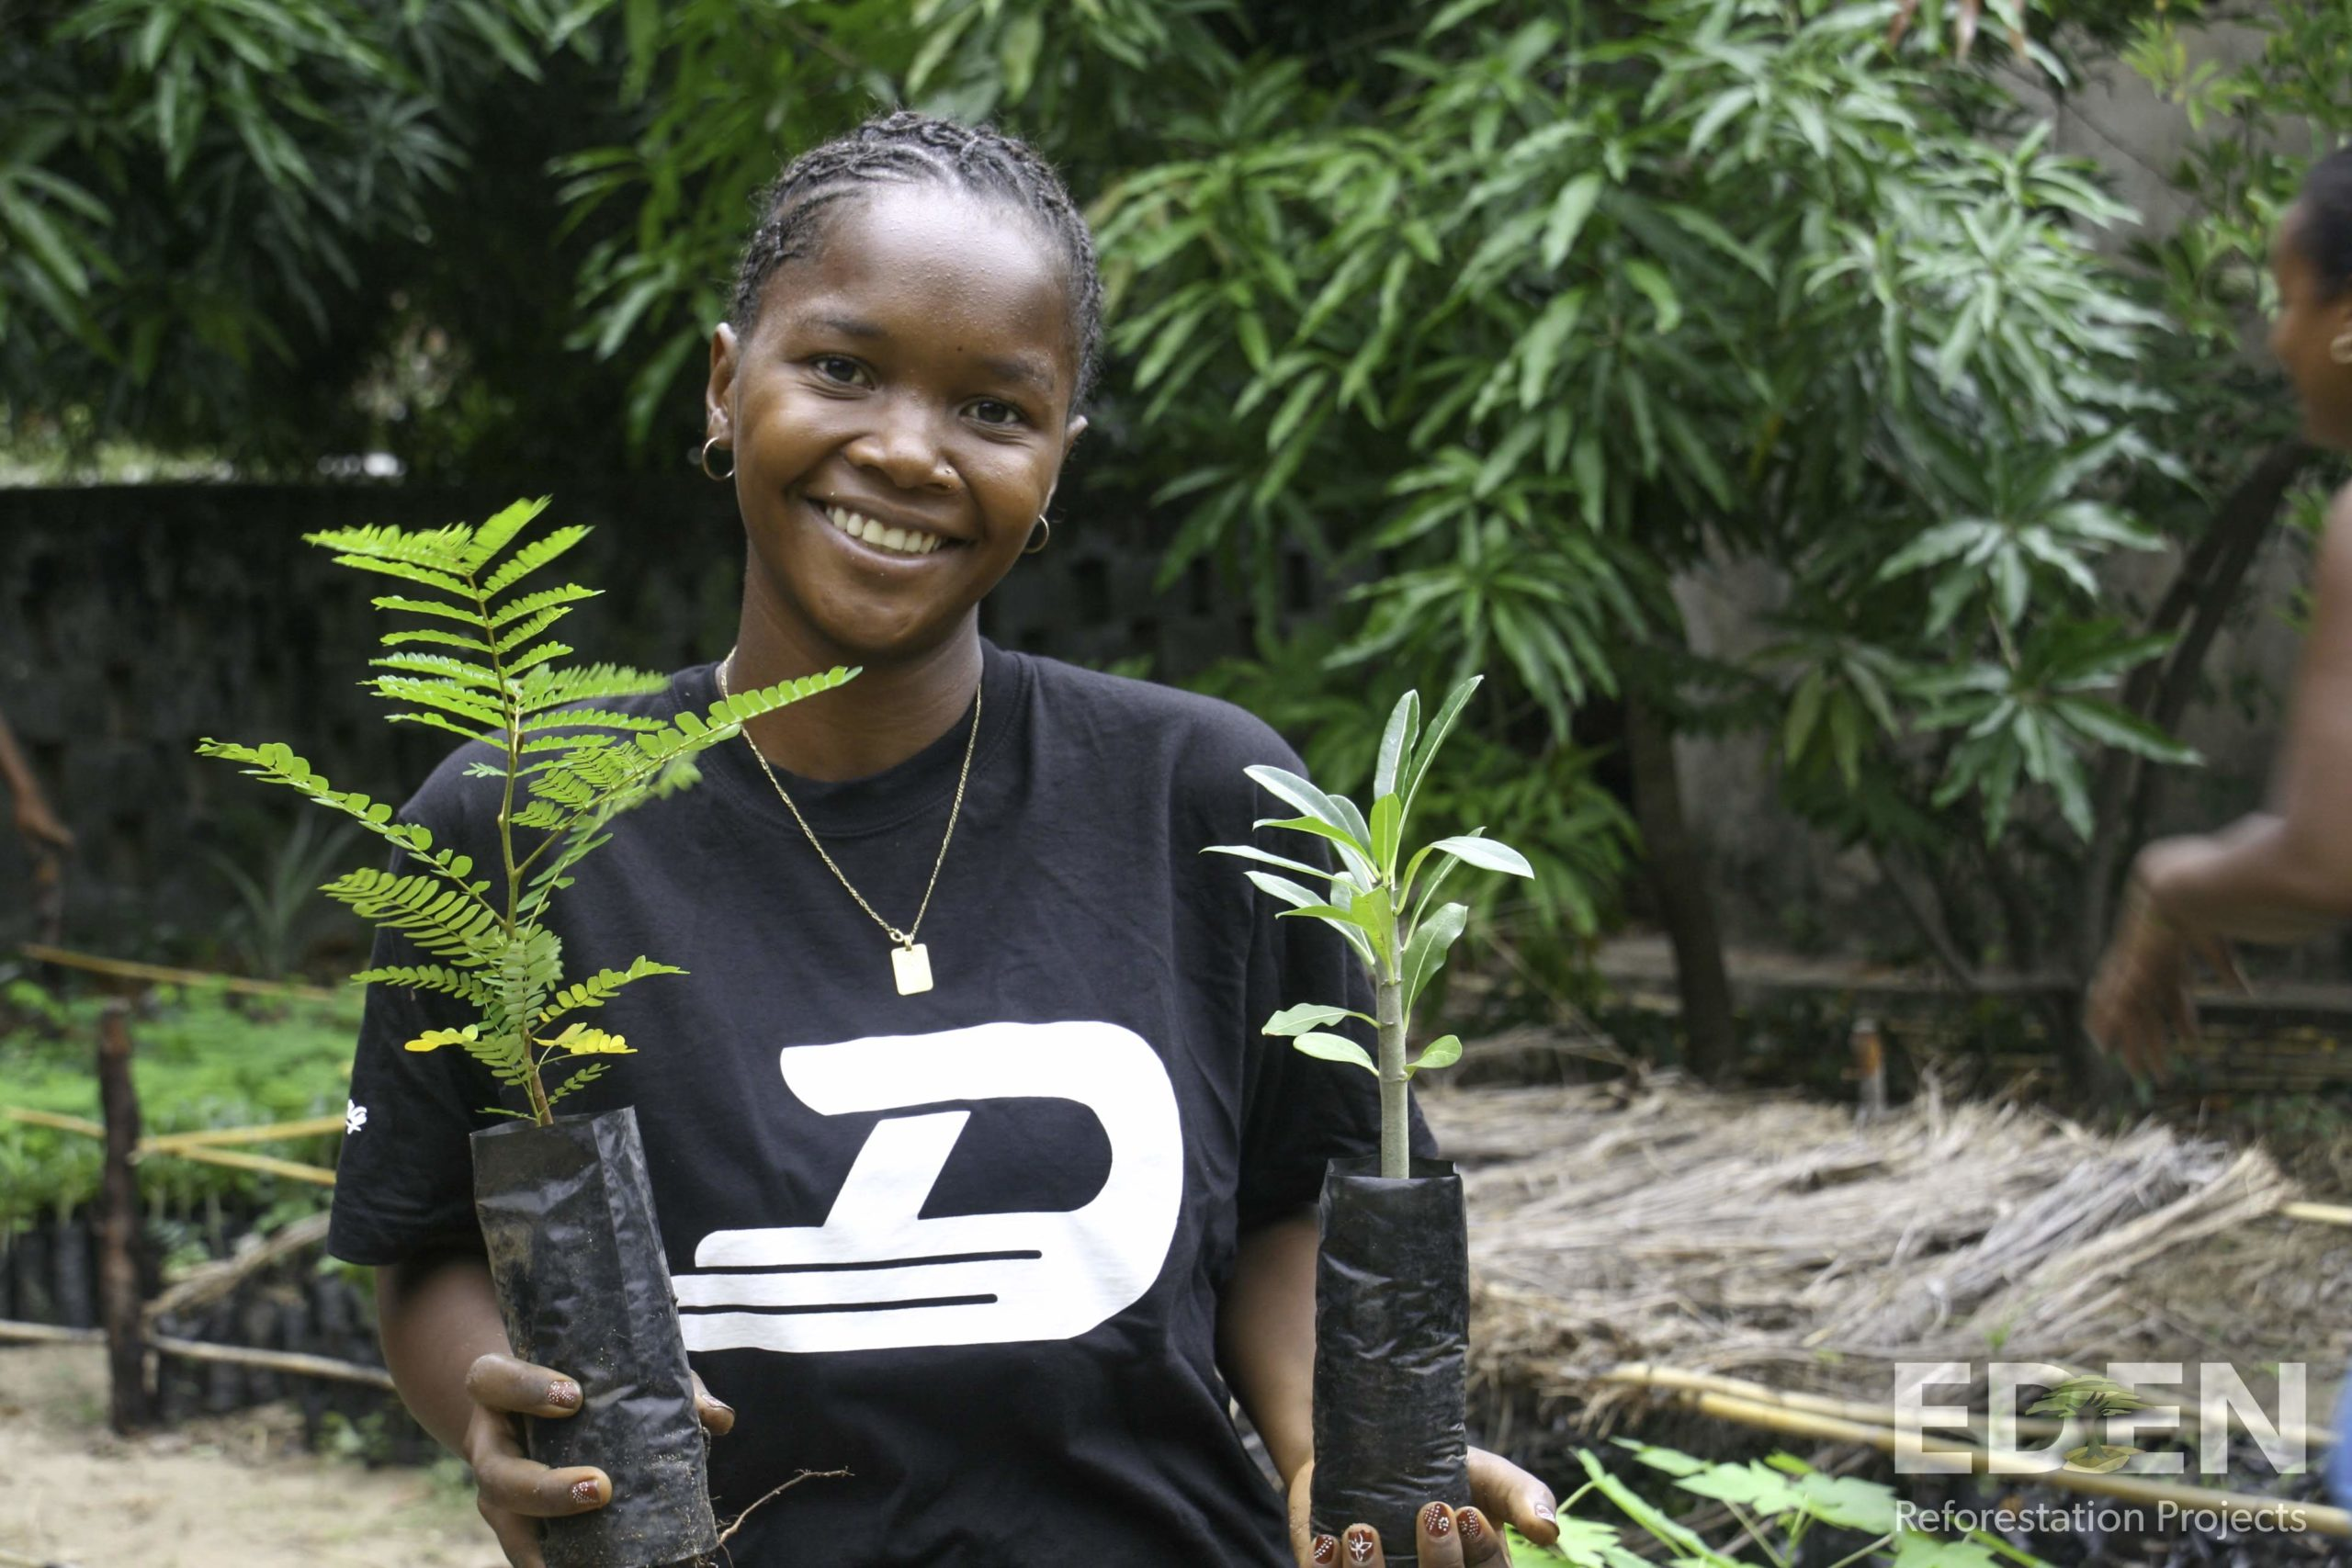 Madagascar_2013_Mamatiana-holding-seedlings-scaled.jpg